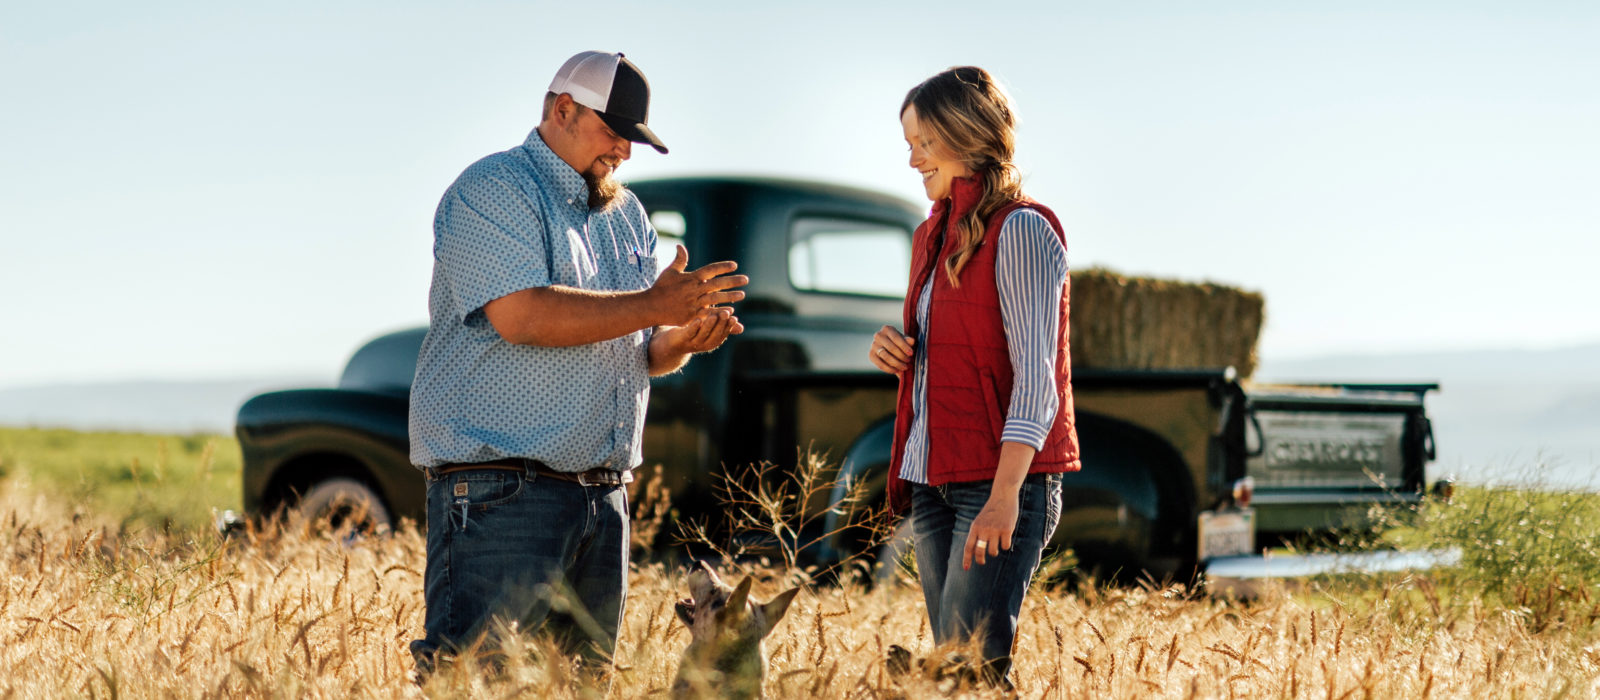 Hay farmers speaking together and two dogs in front of a pickup truck in a field